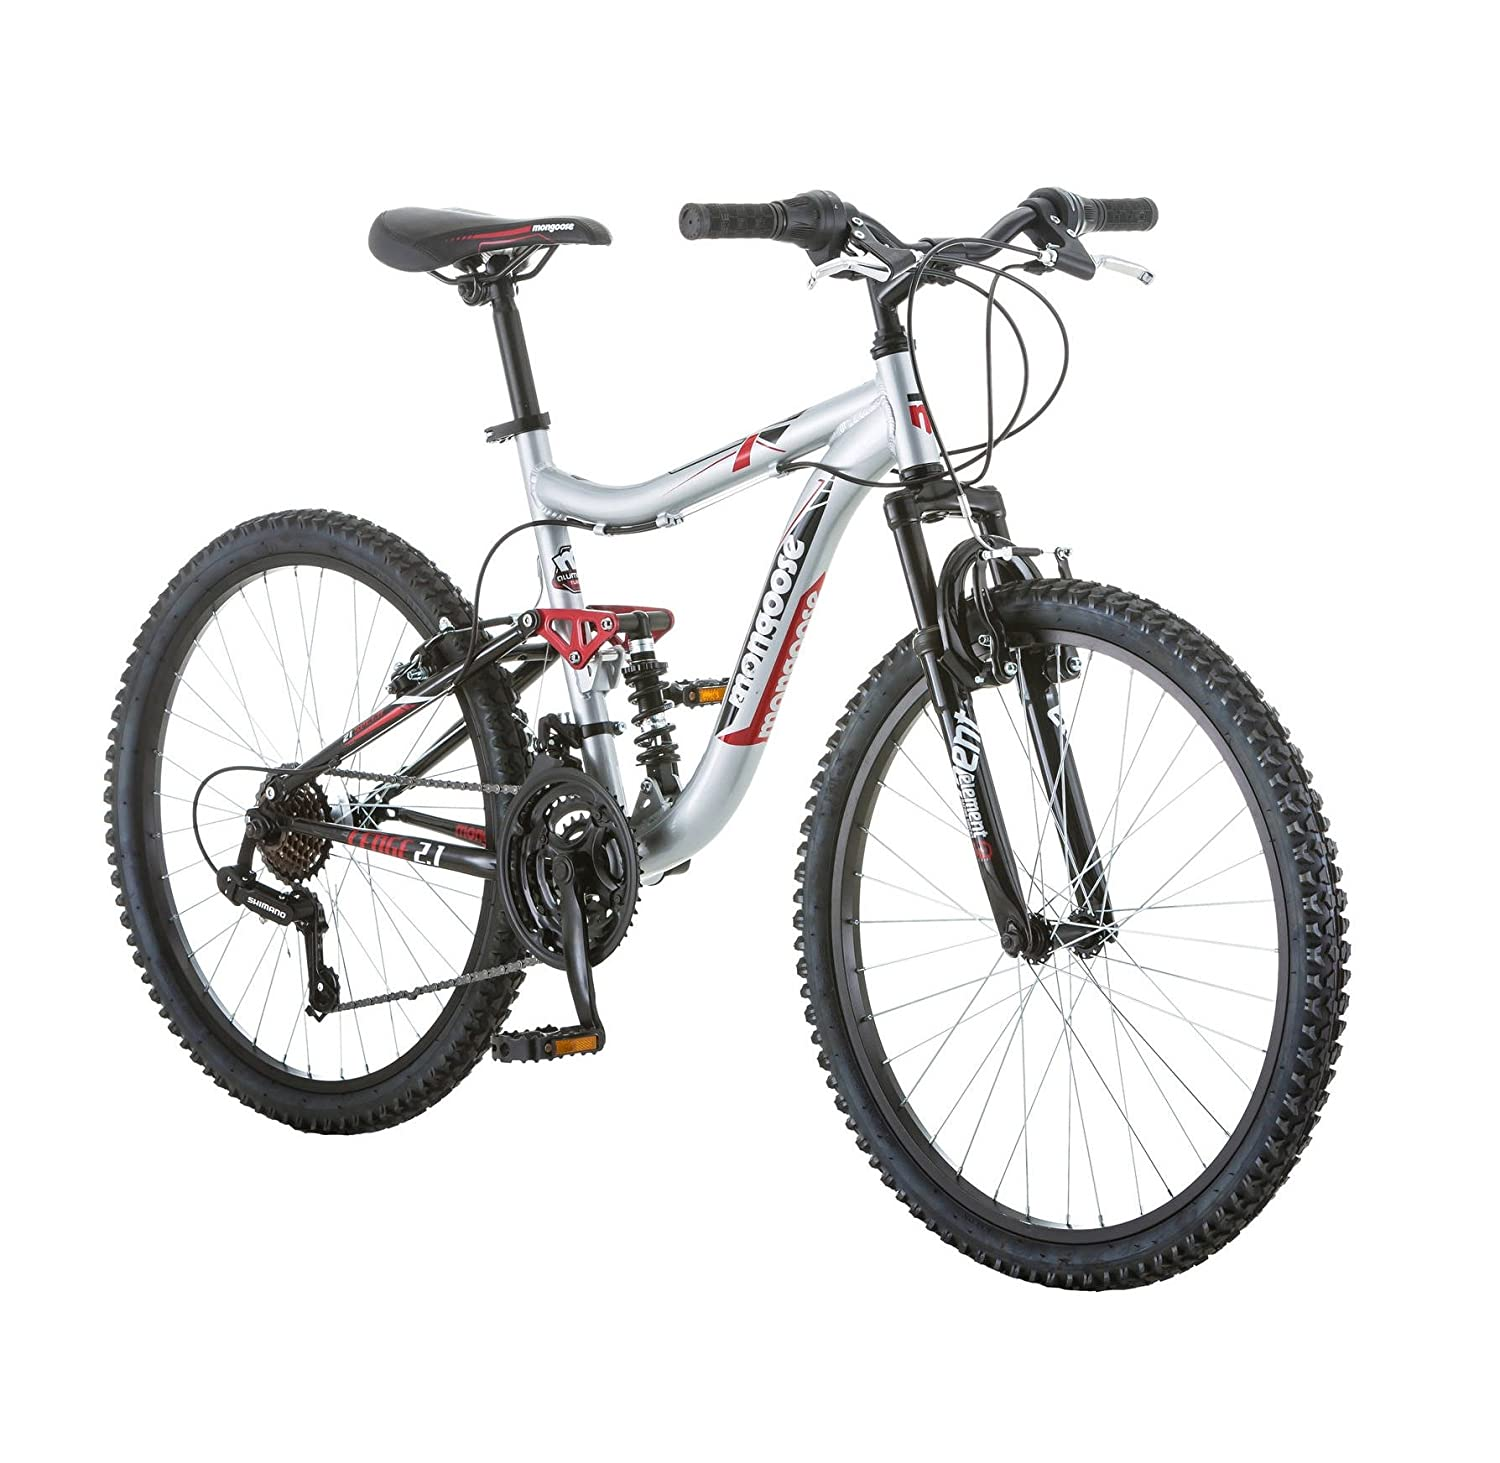 "24"" Mongoose Ledge 2.1 Boys' Mountain Bike"